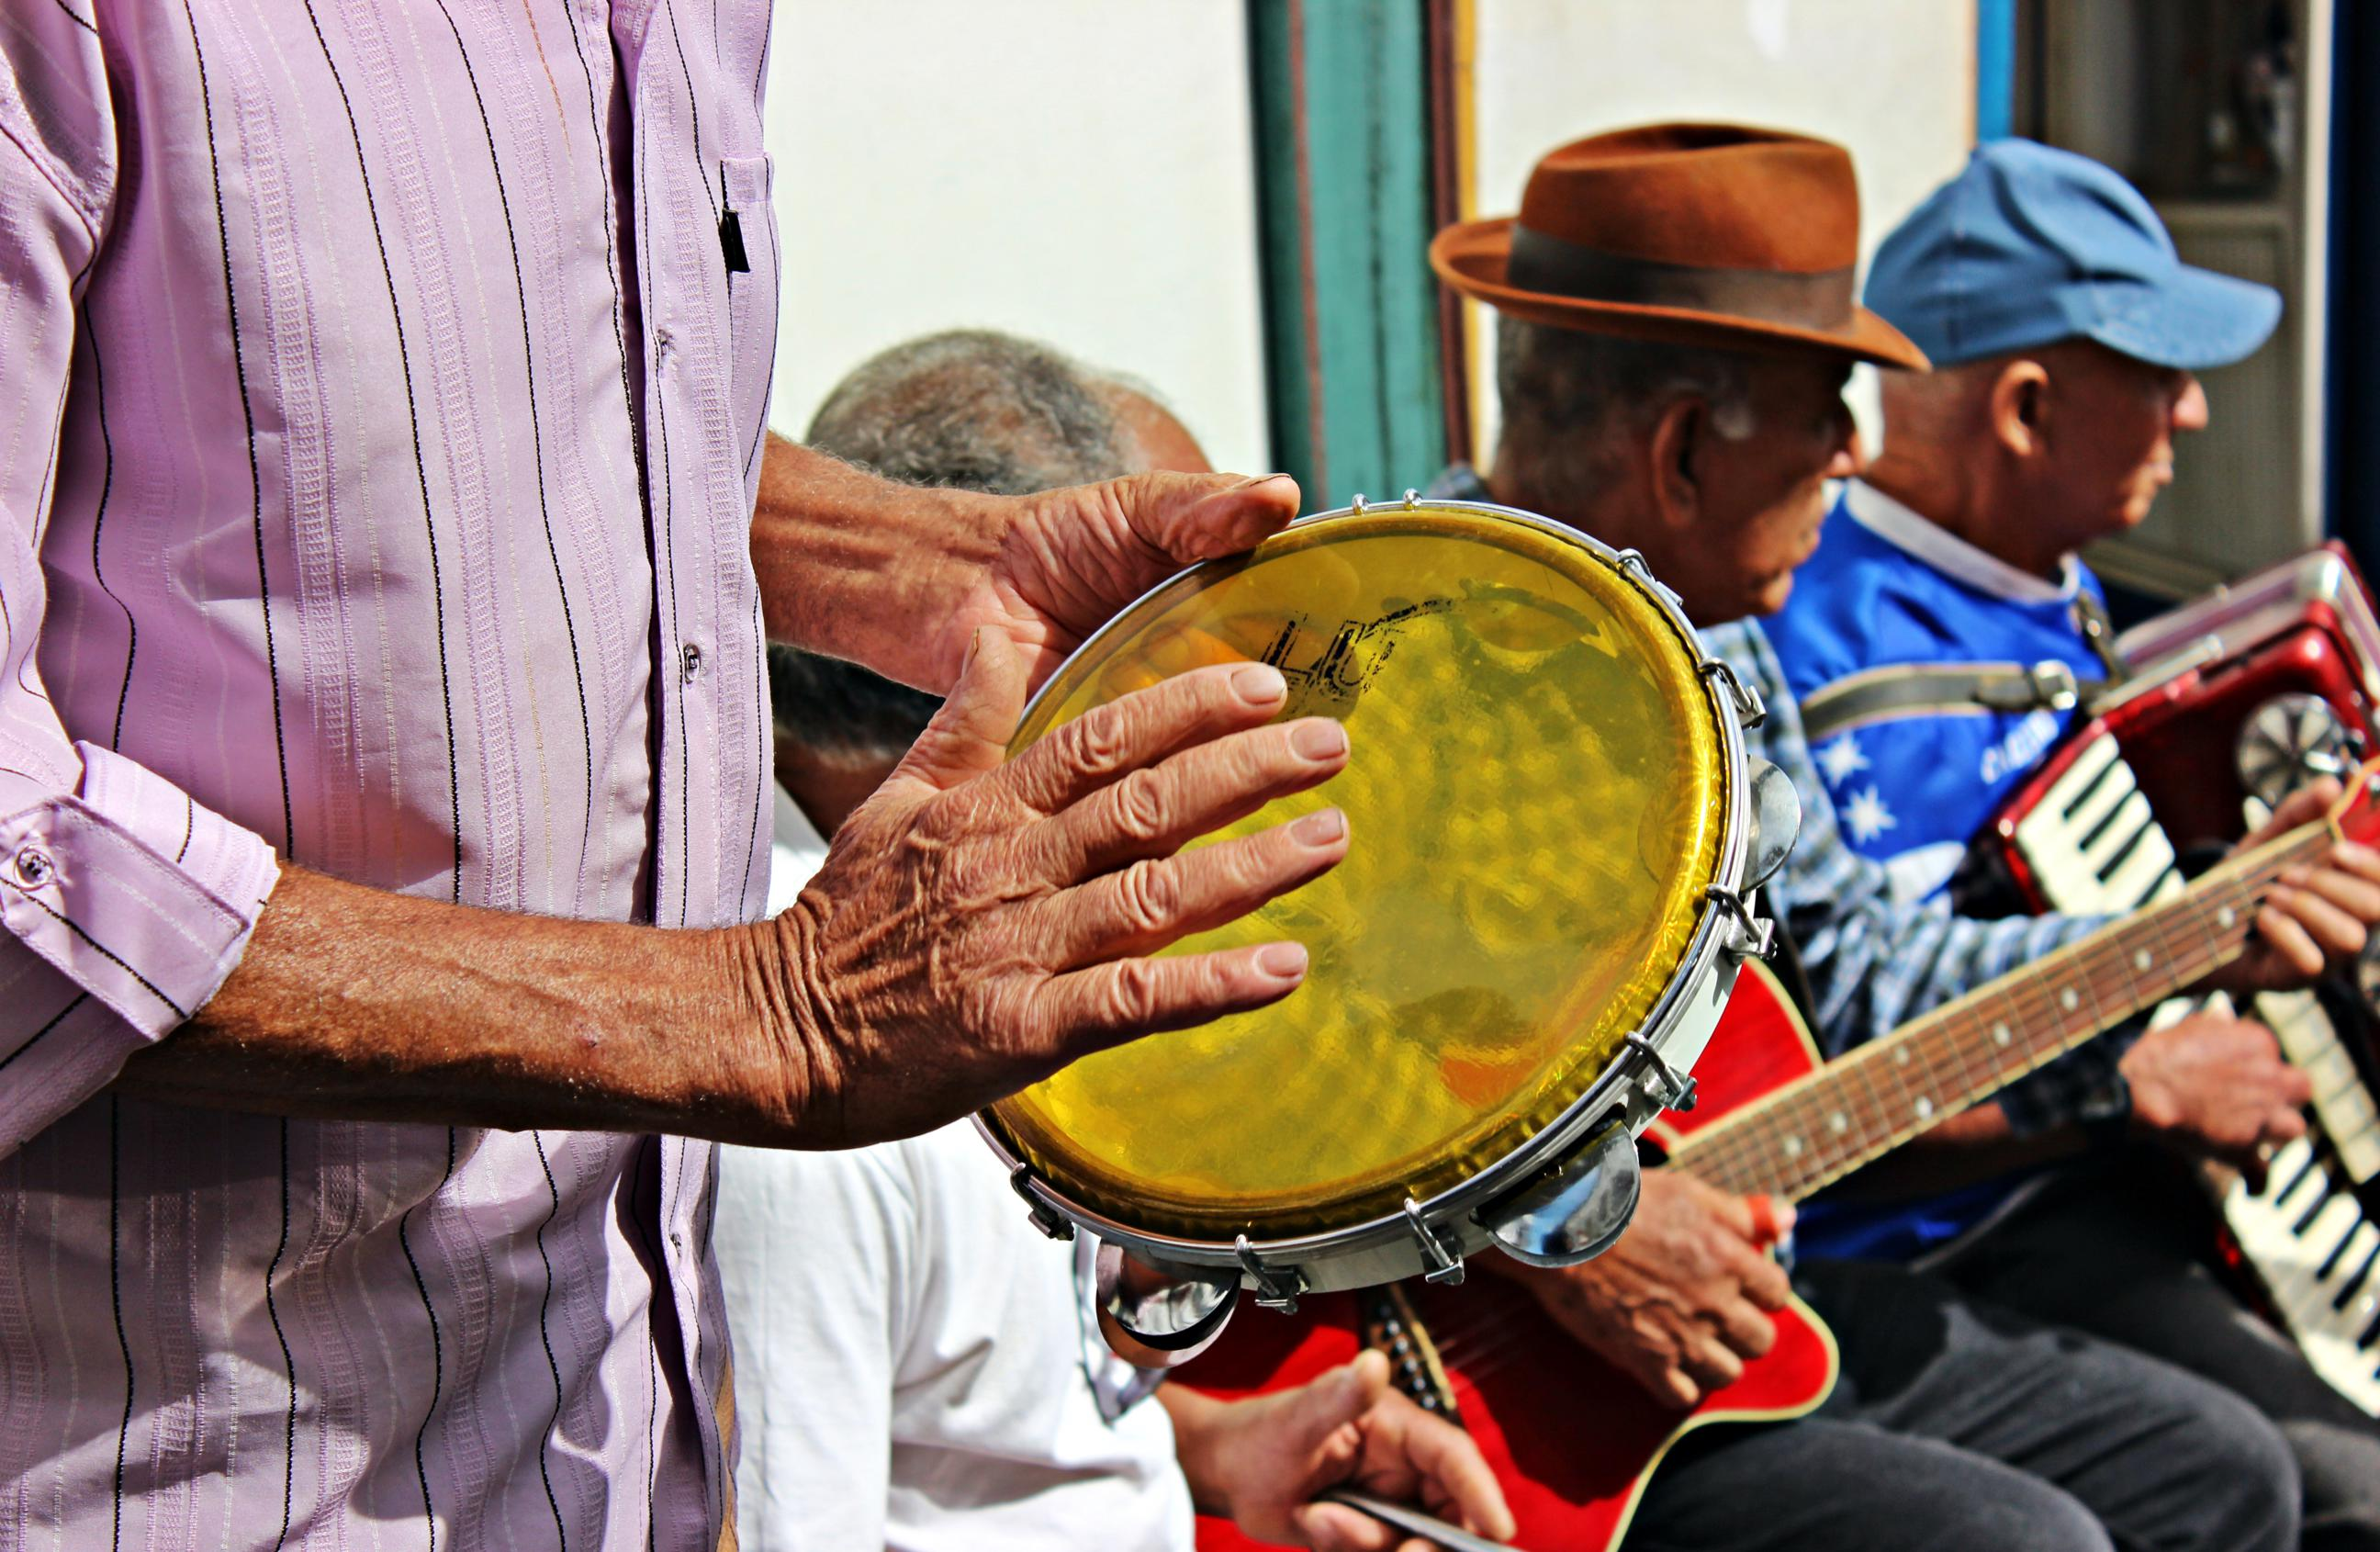 Music and colors in the streets of Diamantina, Brazil. Photo by Natália Gonçalves.